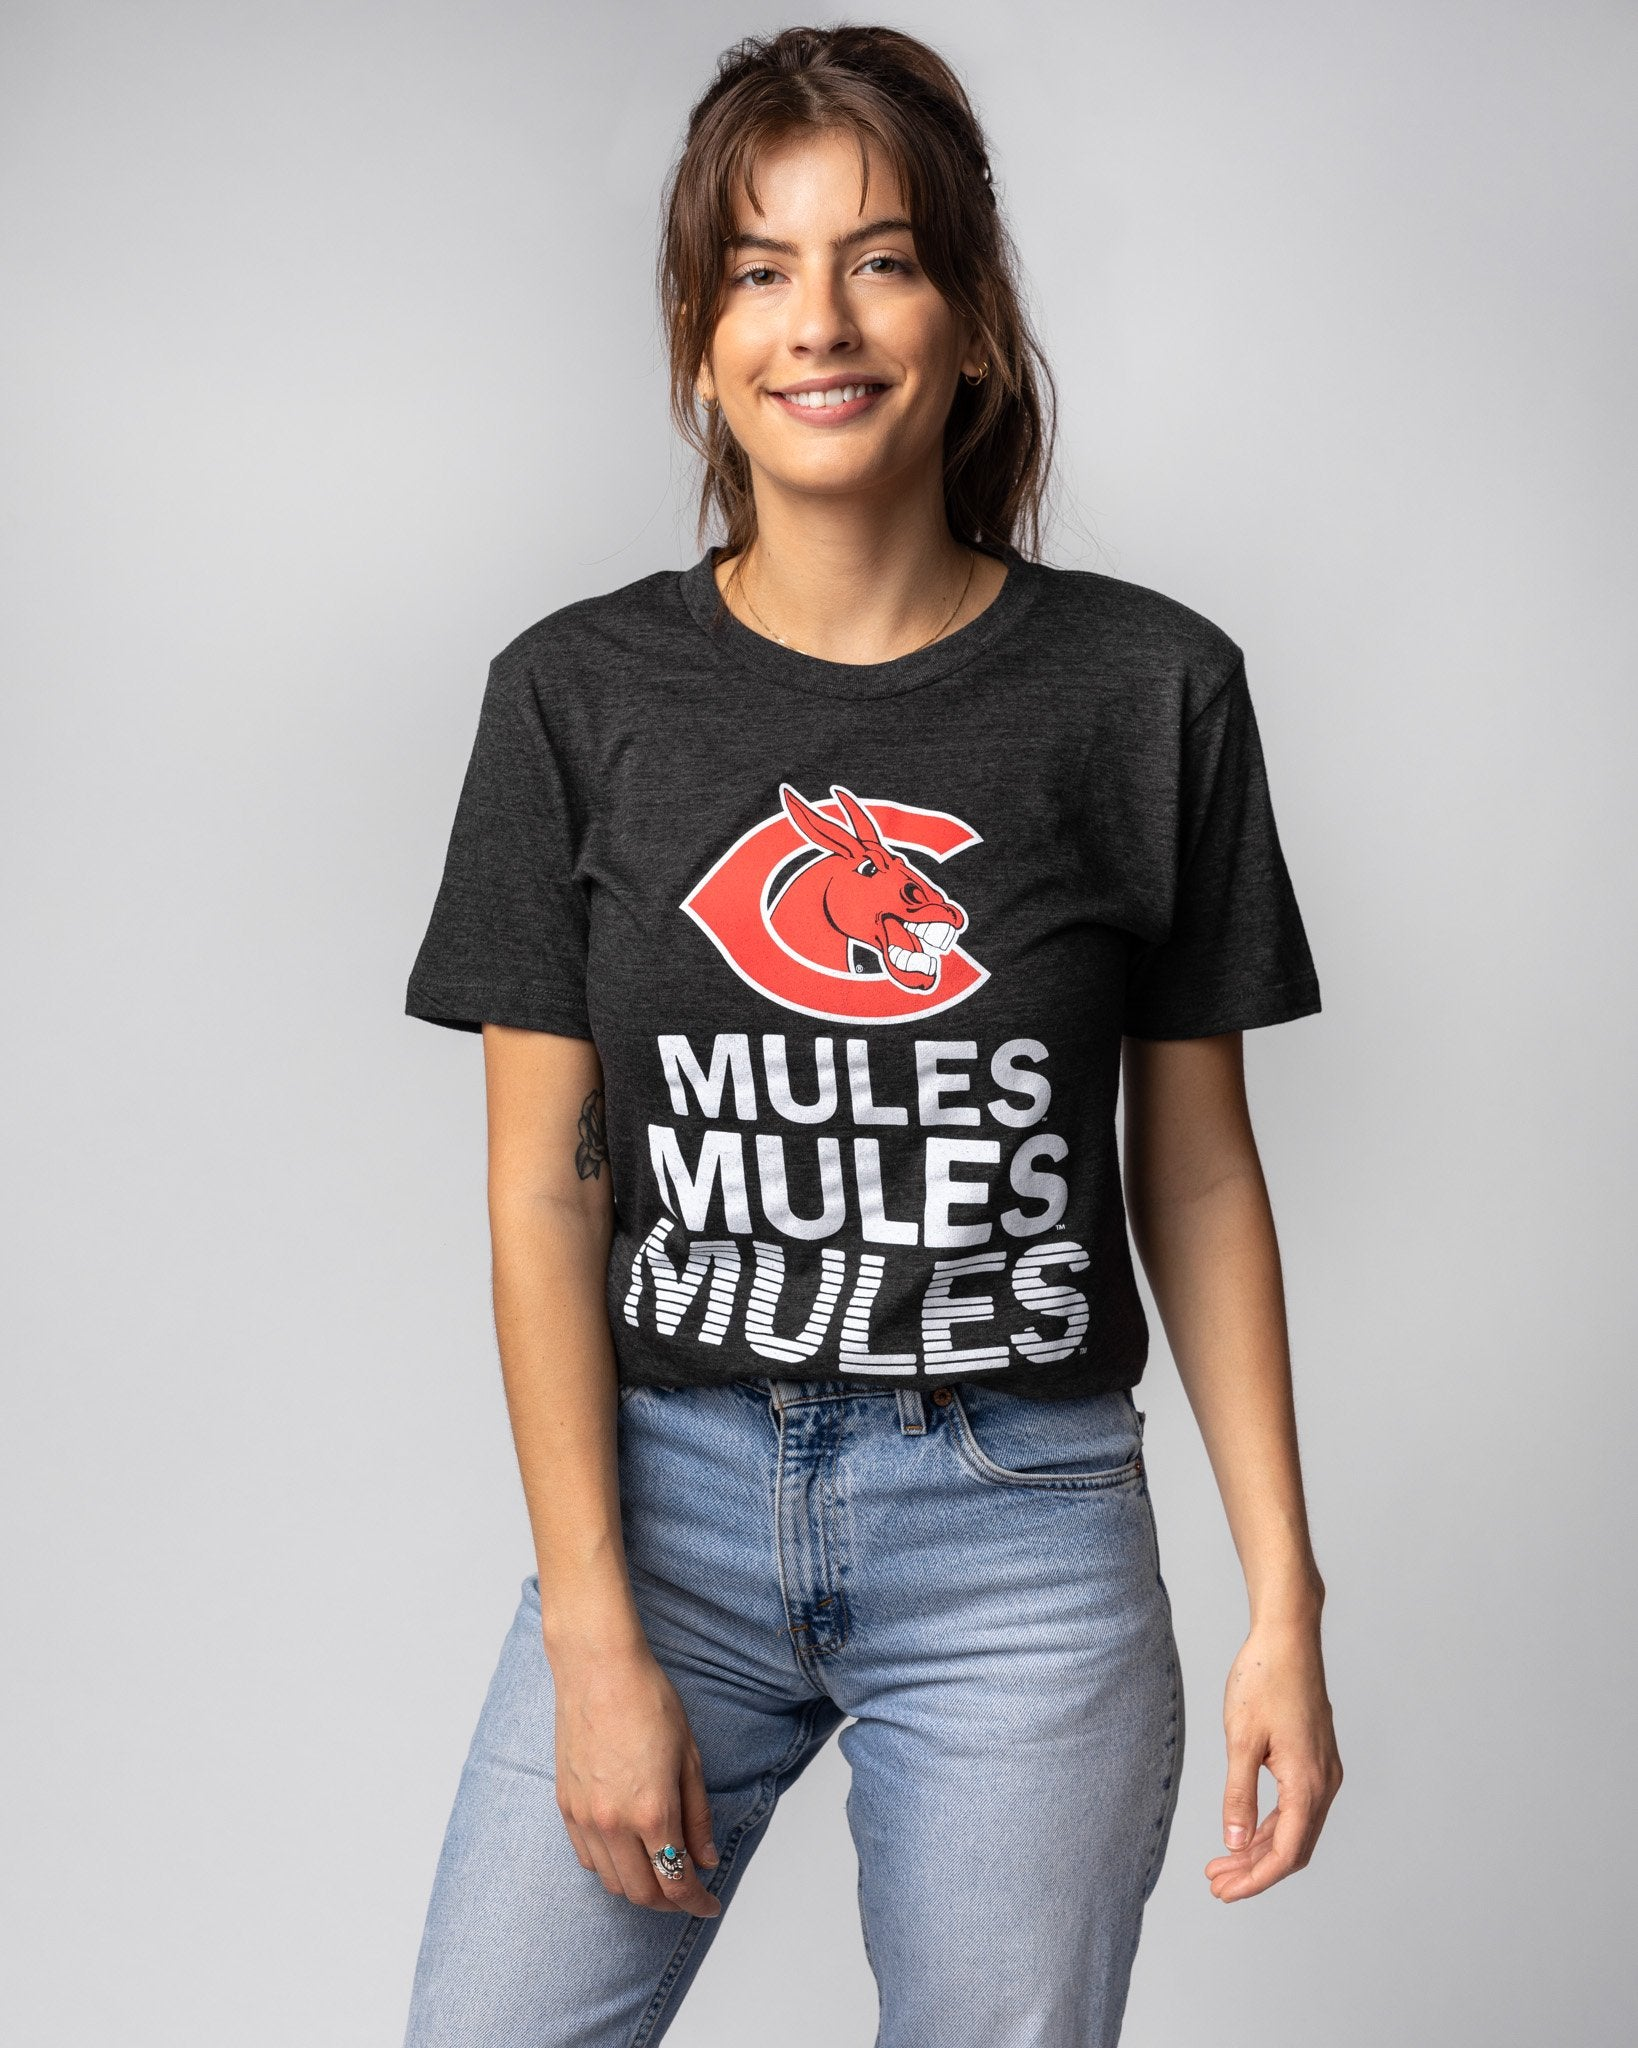 Black University Of Central Missouri Mules Stacked Vintage T-Shirt Front